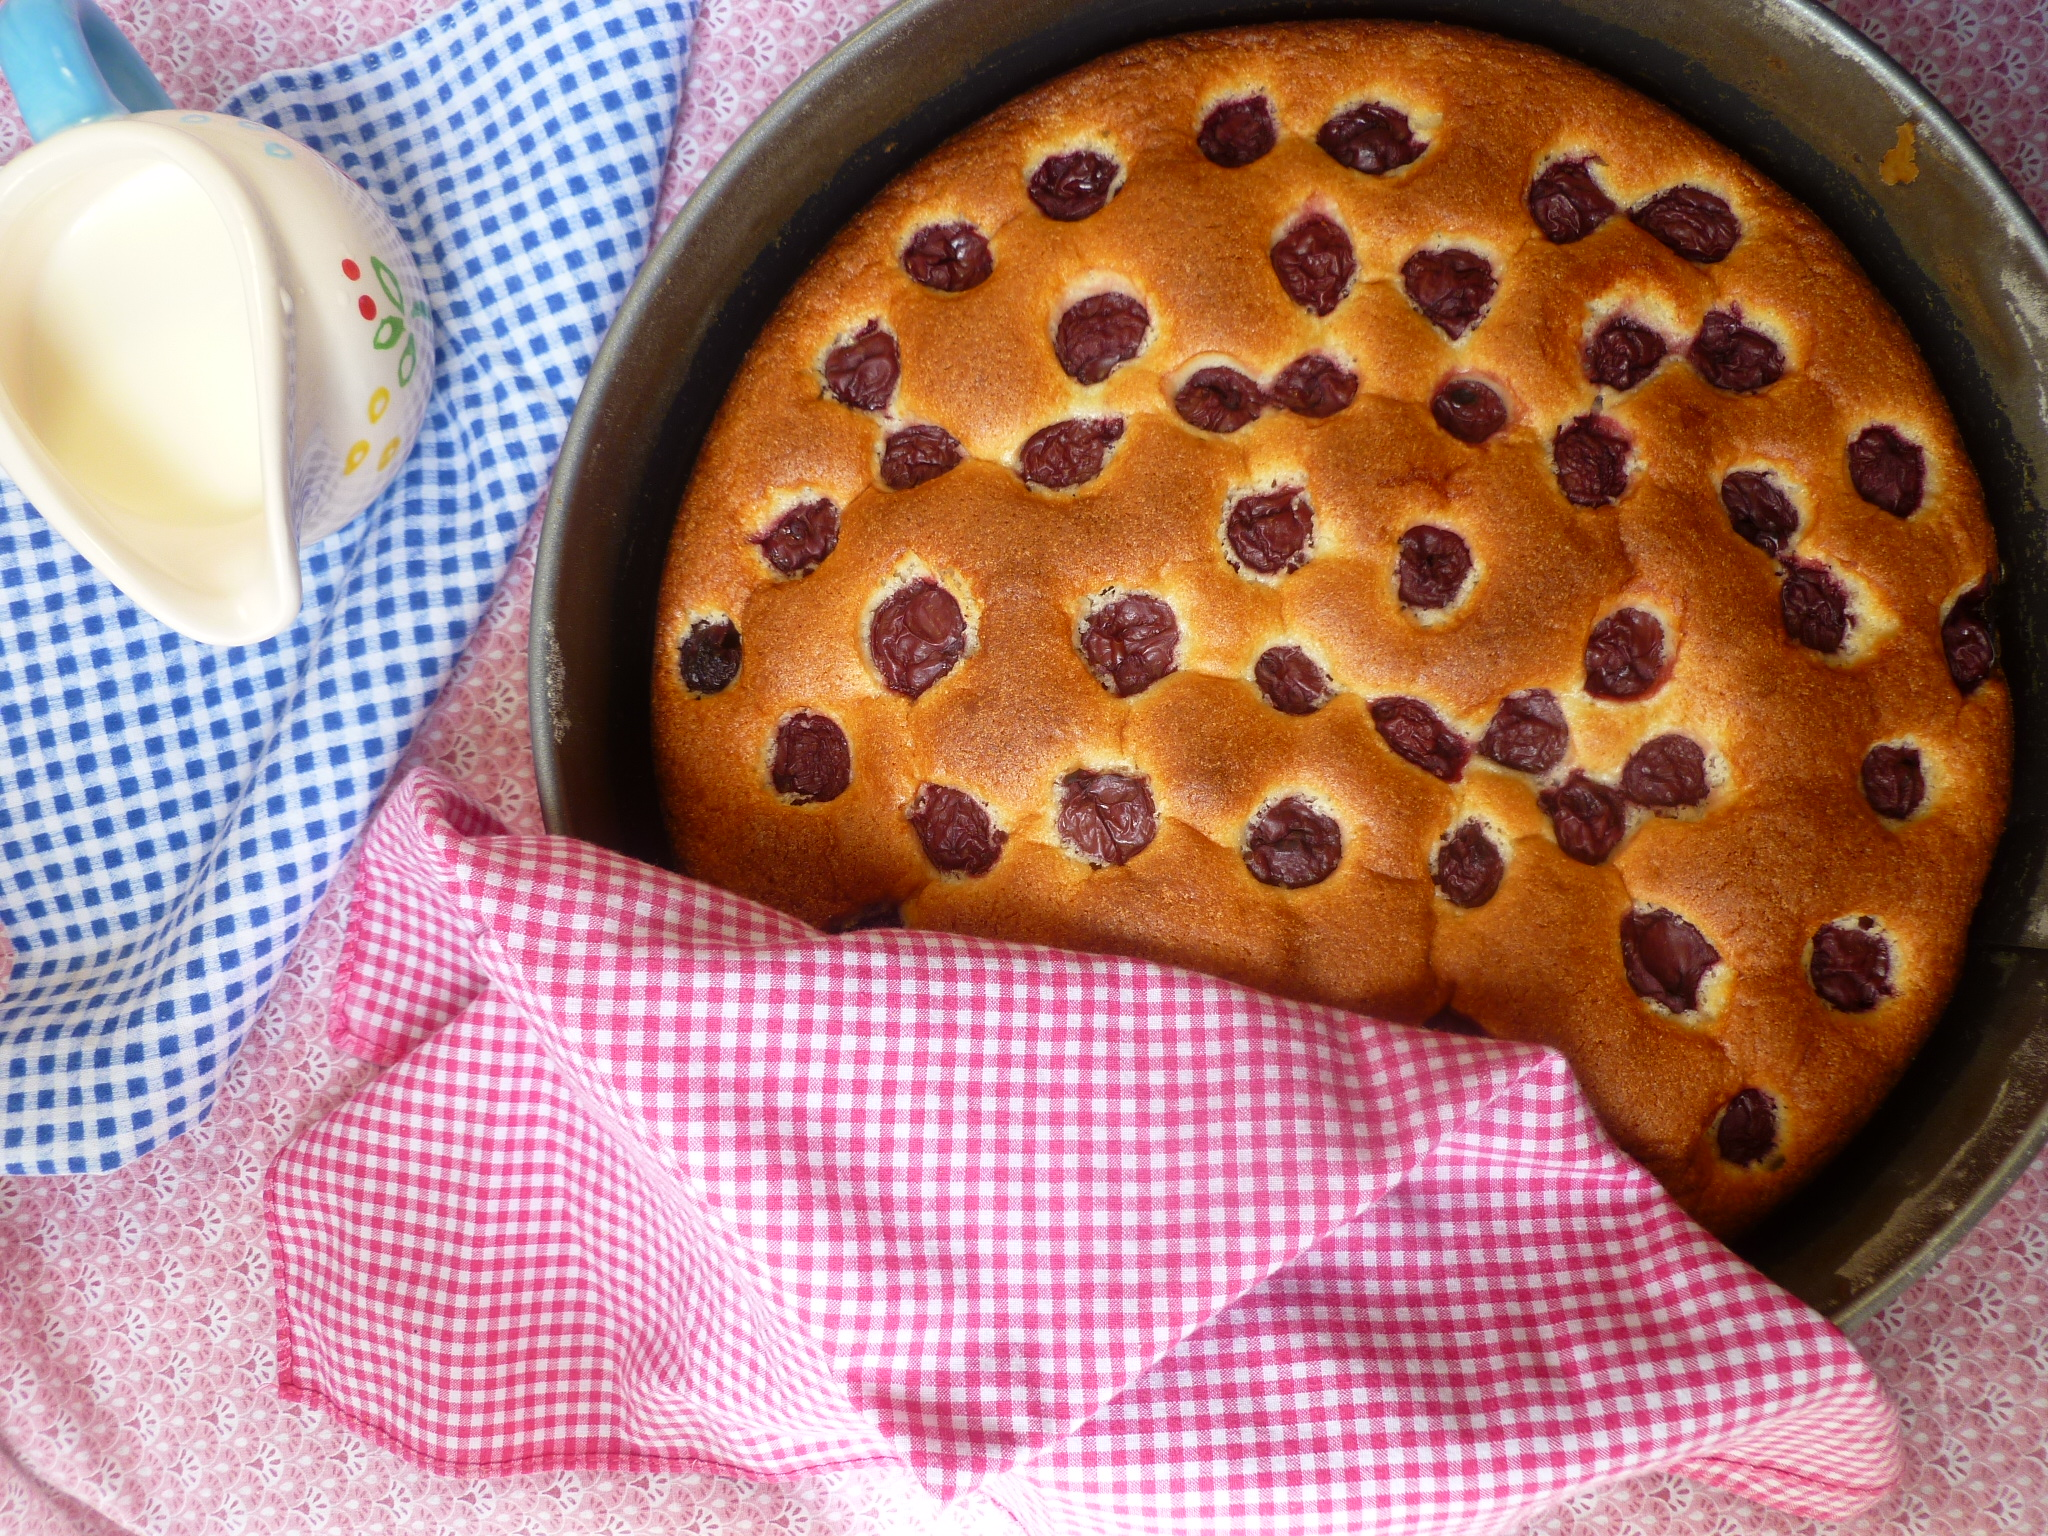 ... cherry cake by ldhny on hungarian sour cherry cake sour cherry cake